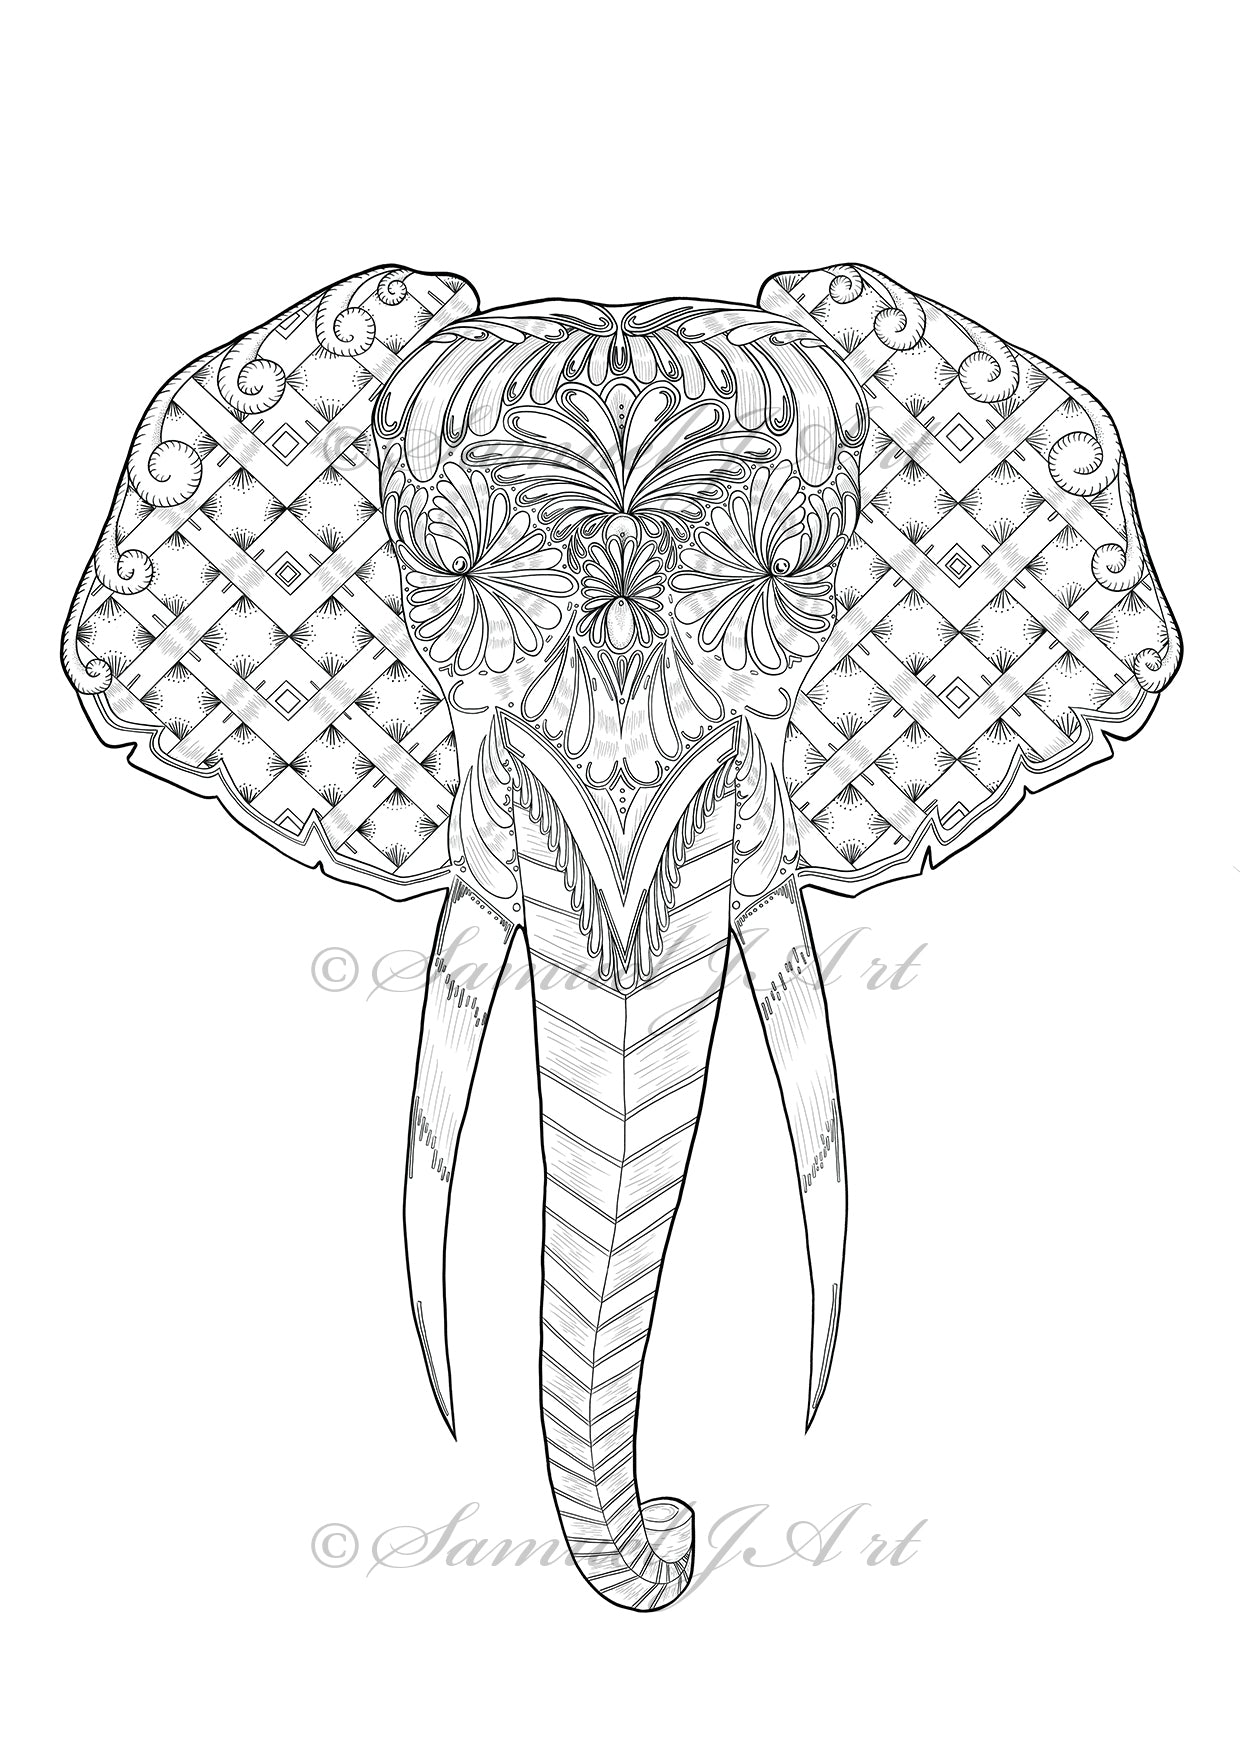 Masked Elephant - Colouring Template - Digital Download